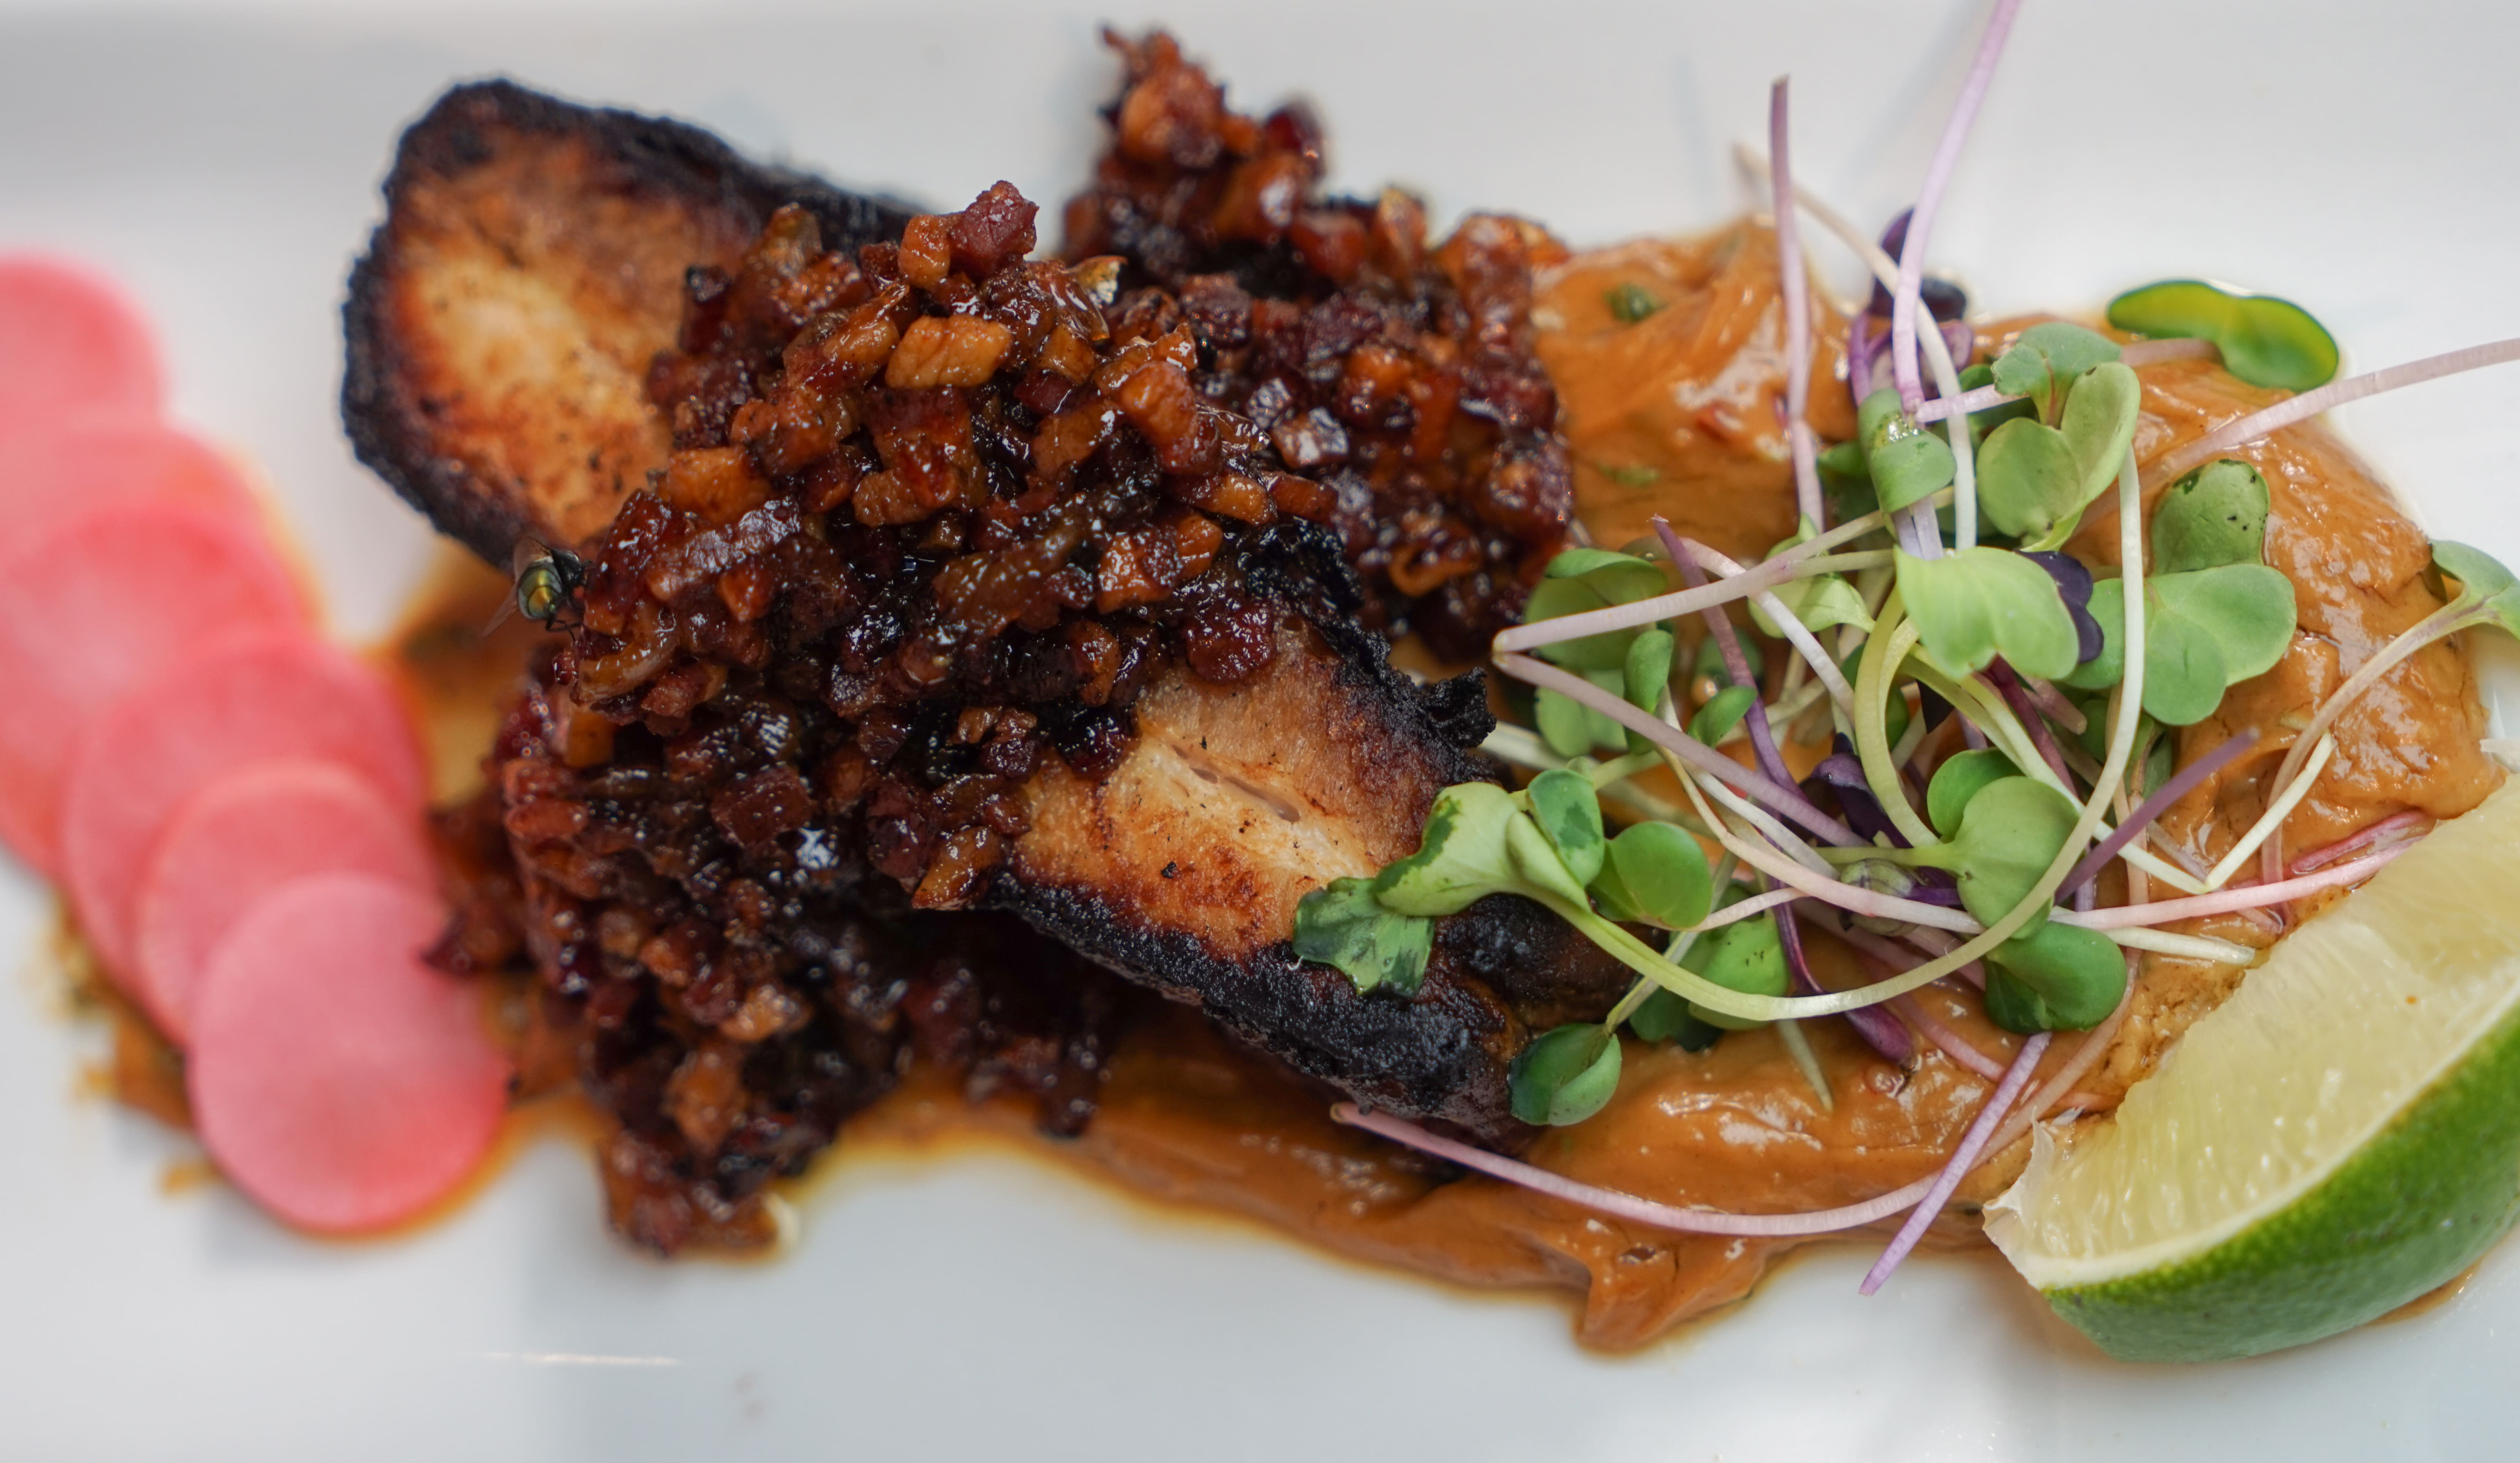 food- delicious pork belly with onion relish and fresh pea shoots